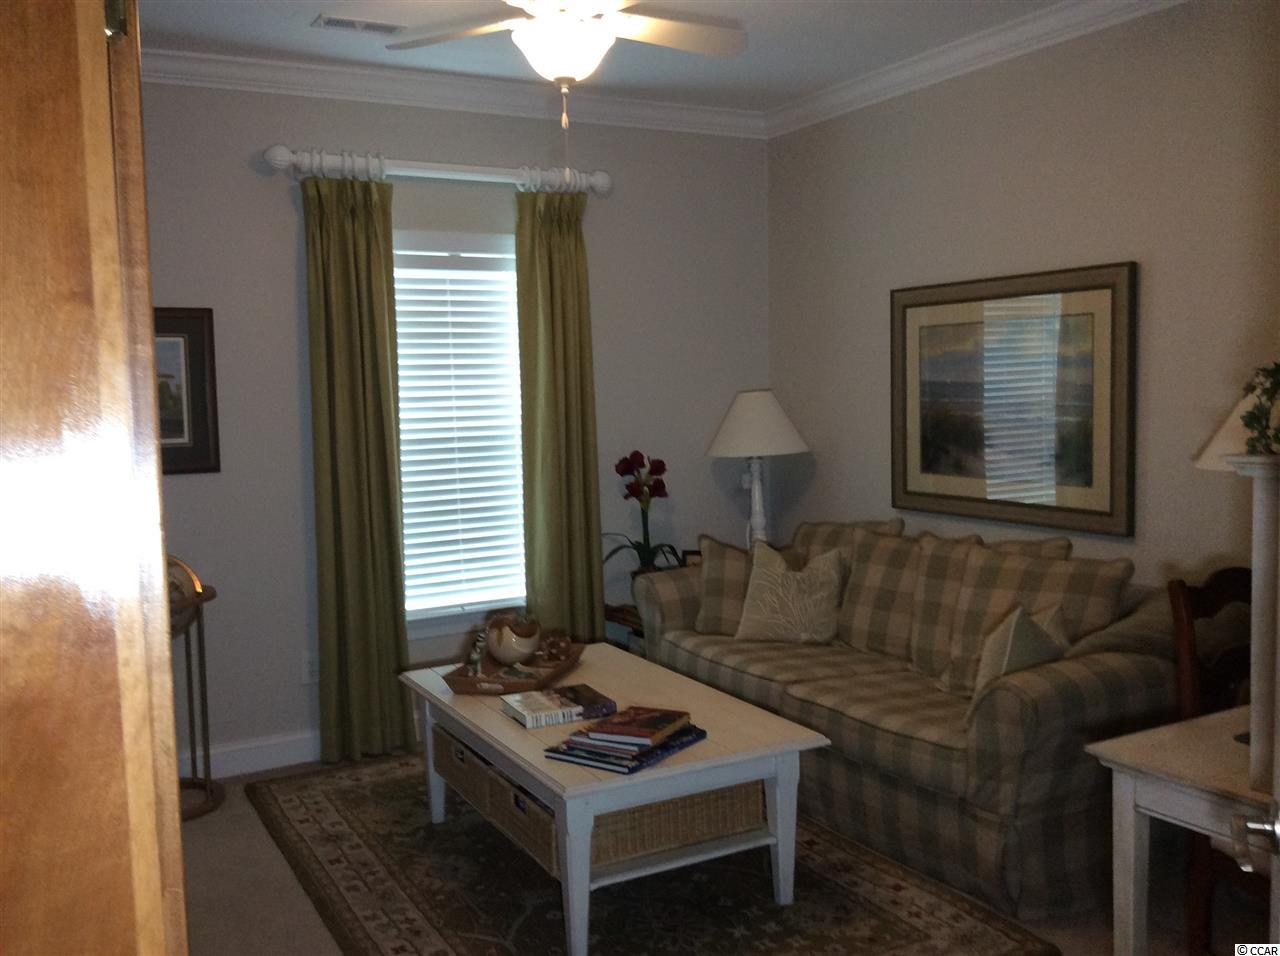 This 3 bedroom condo at  703 is currently for sale